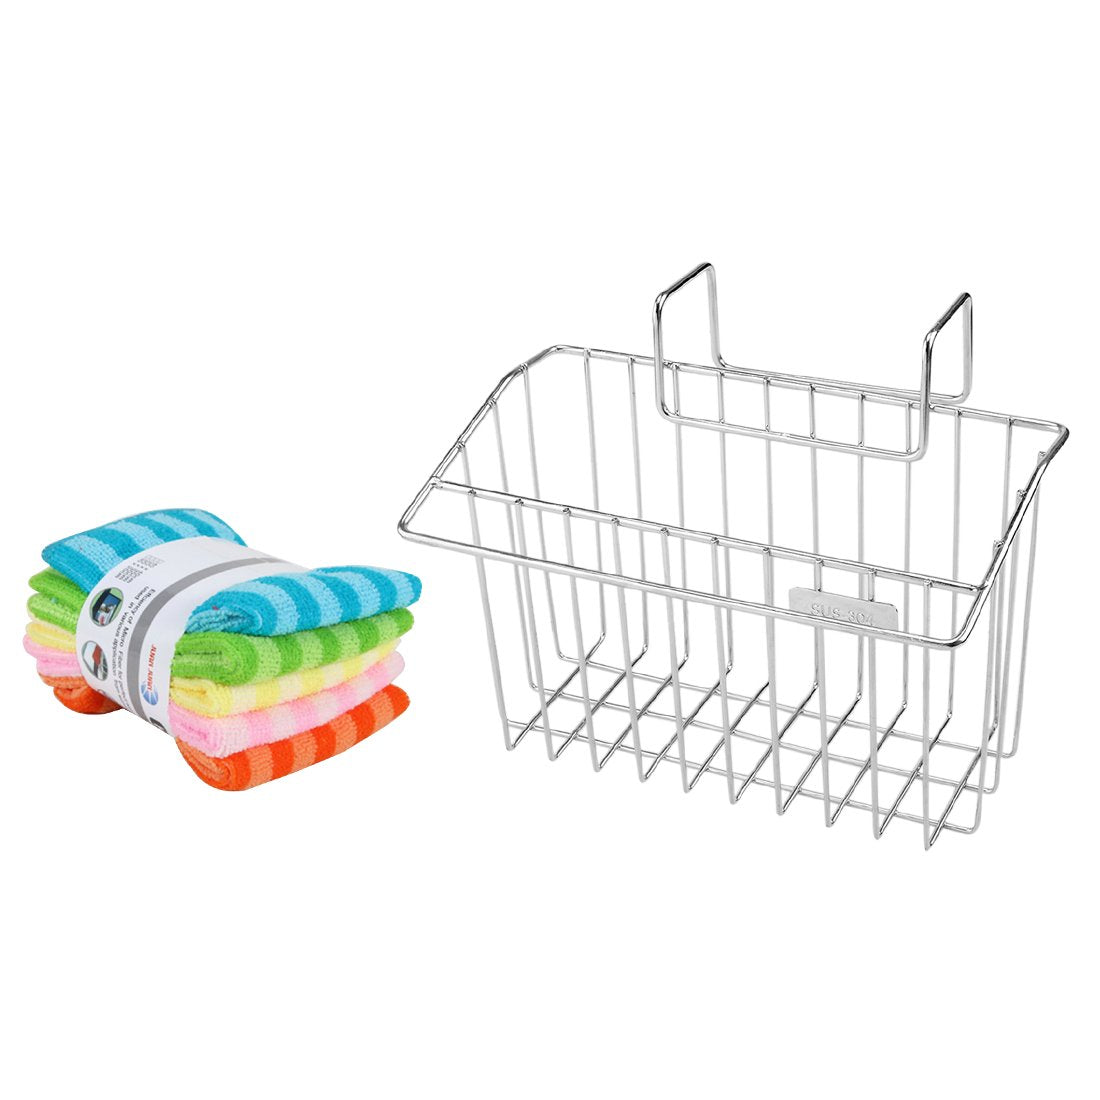 Peleustech Sink Hanging Rack + 5 Dishcloths, Stainless Steel Storage Box Draining Kitchen Soap Sponge Holder Rack Brush Sponge Sink Draining Towel